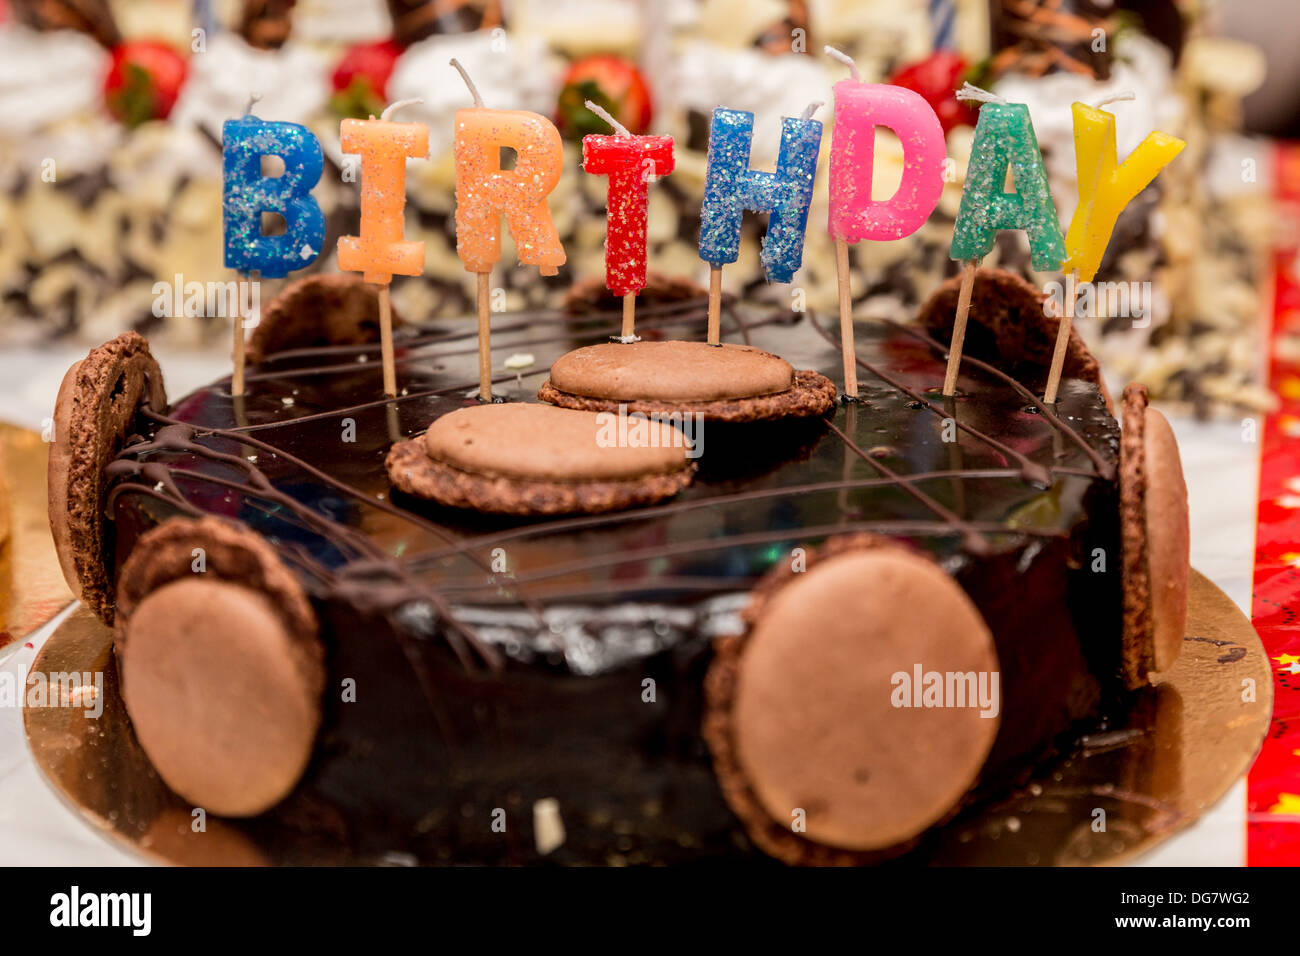 Beautifully Decorated Chocolate Birthday Cake With Candles Stock